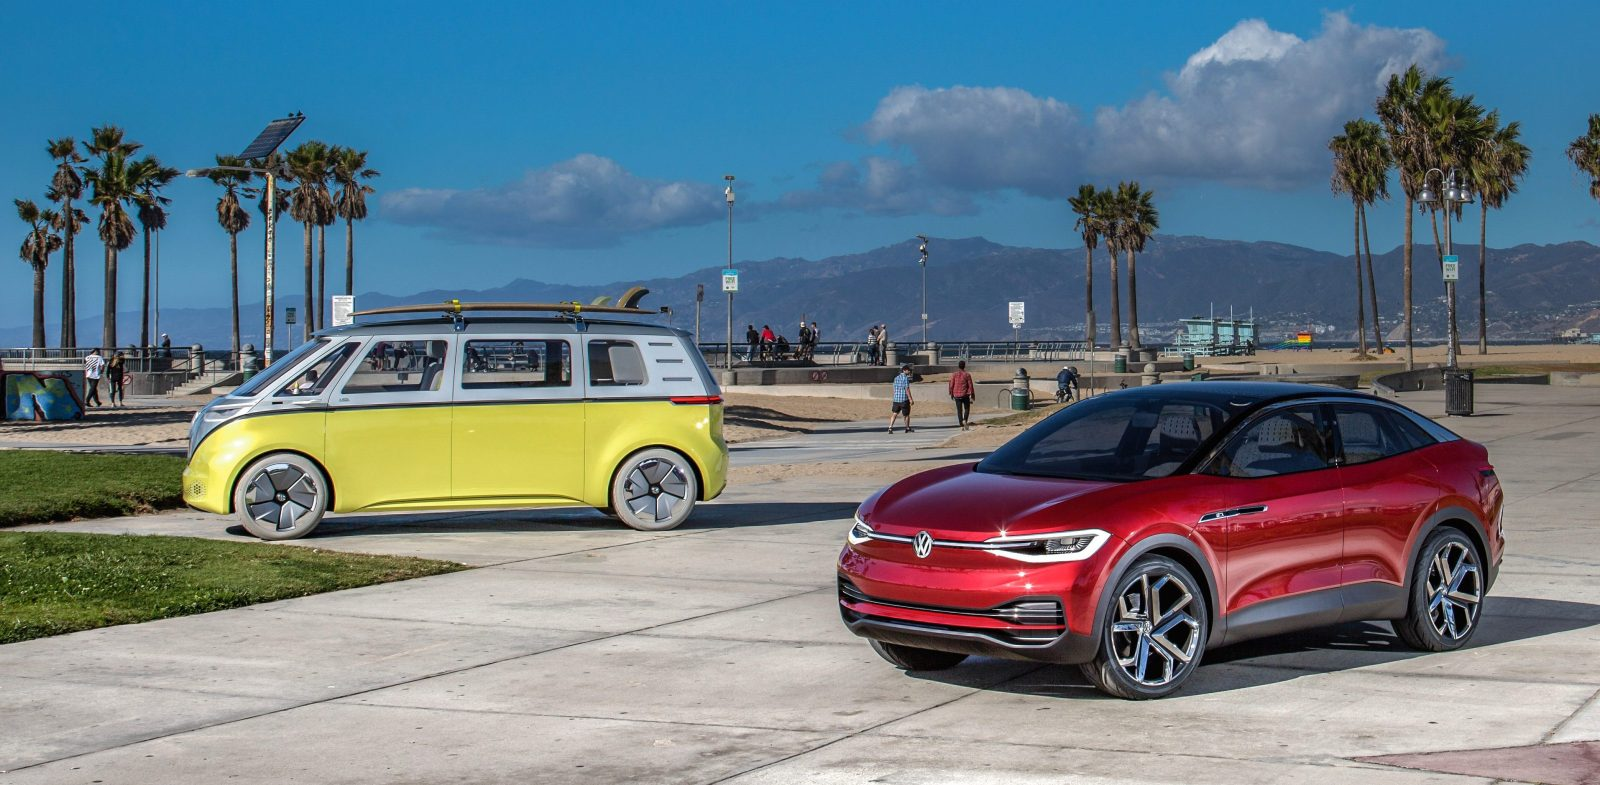 Vw Says It Accelerates Plan For 22 Million Electric Vehicles In 10 Yrs As Part Of Decarbonization